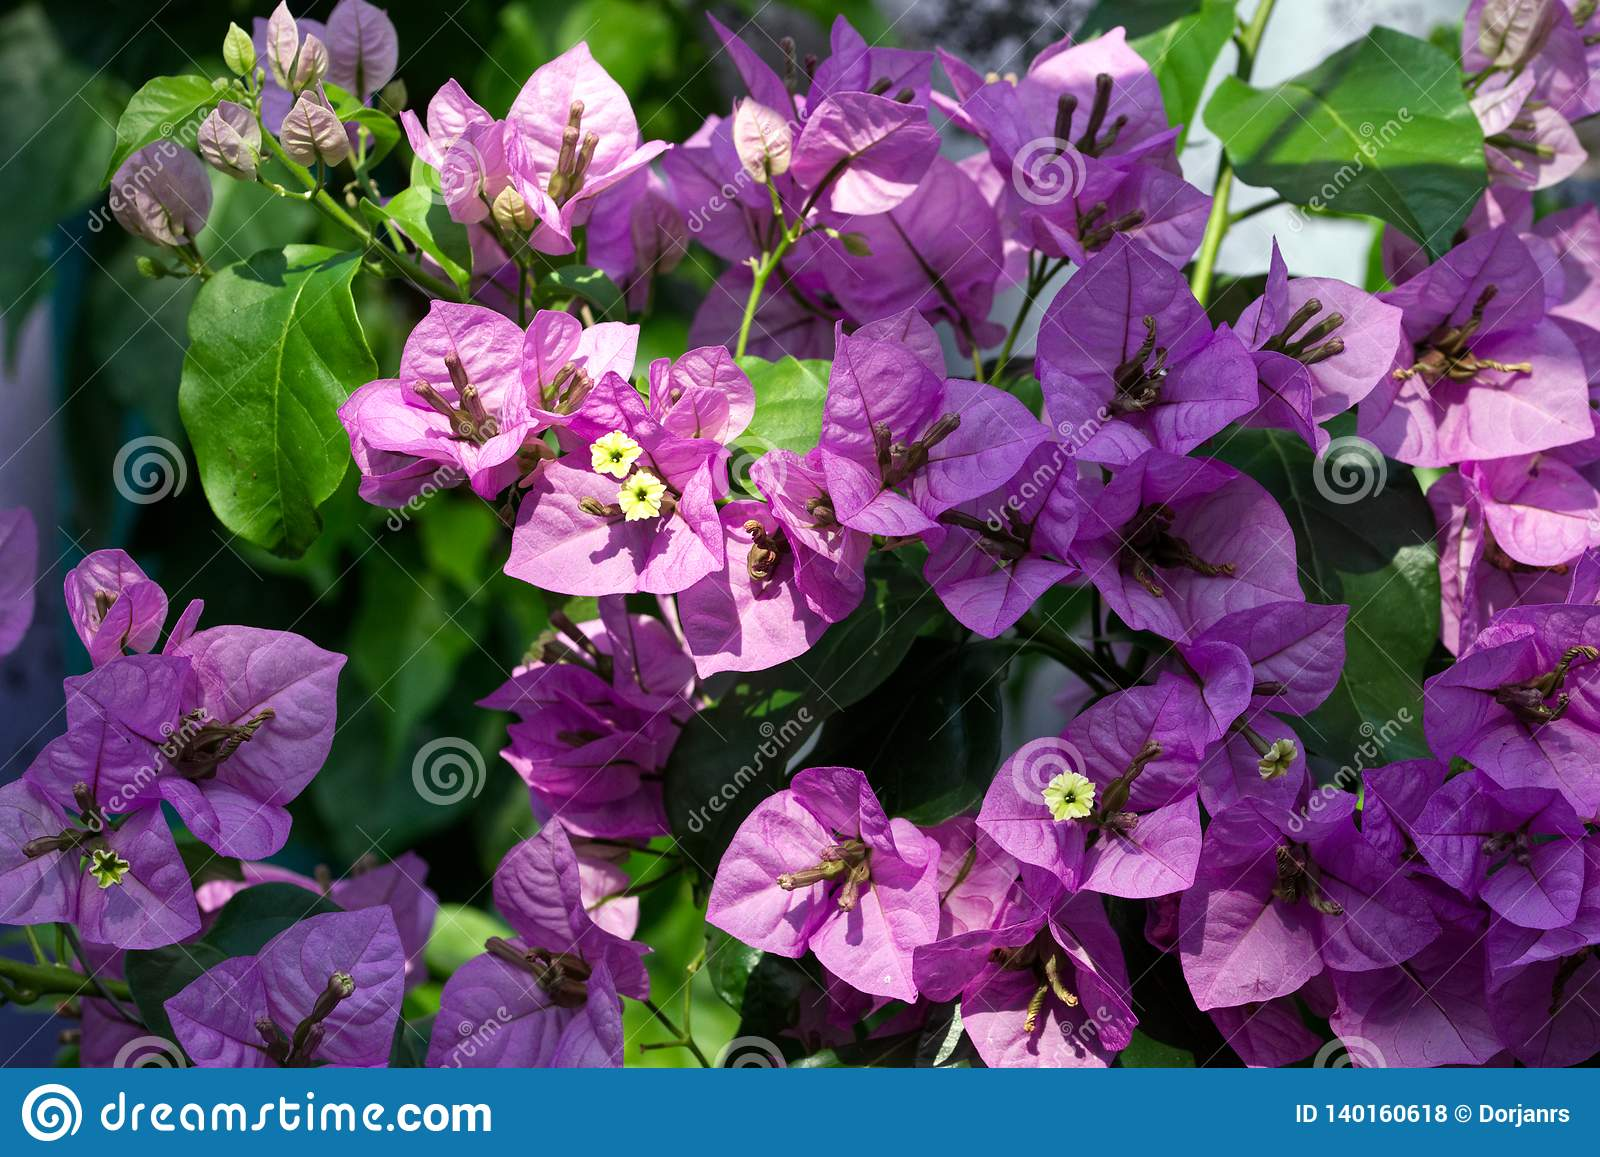 Pink violet Bougainvillea flower blossoming